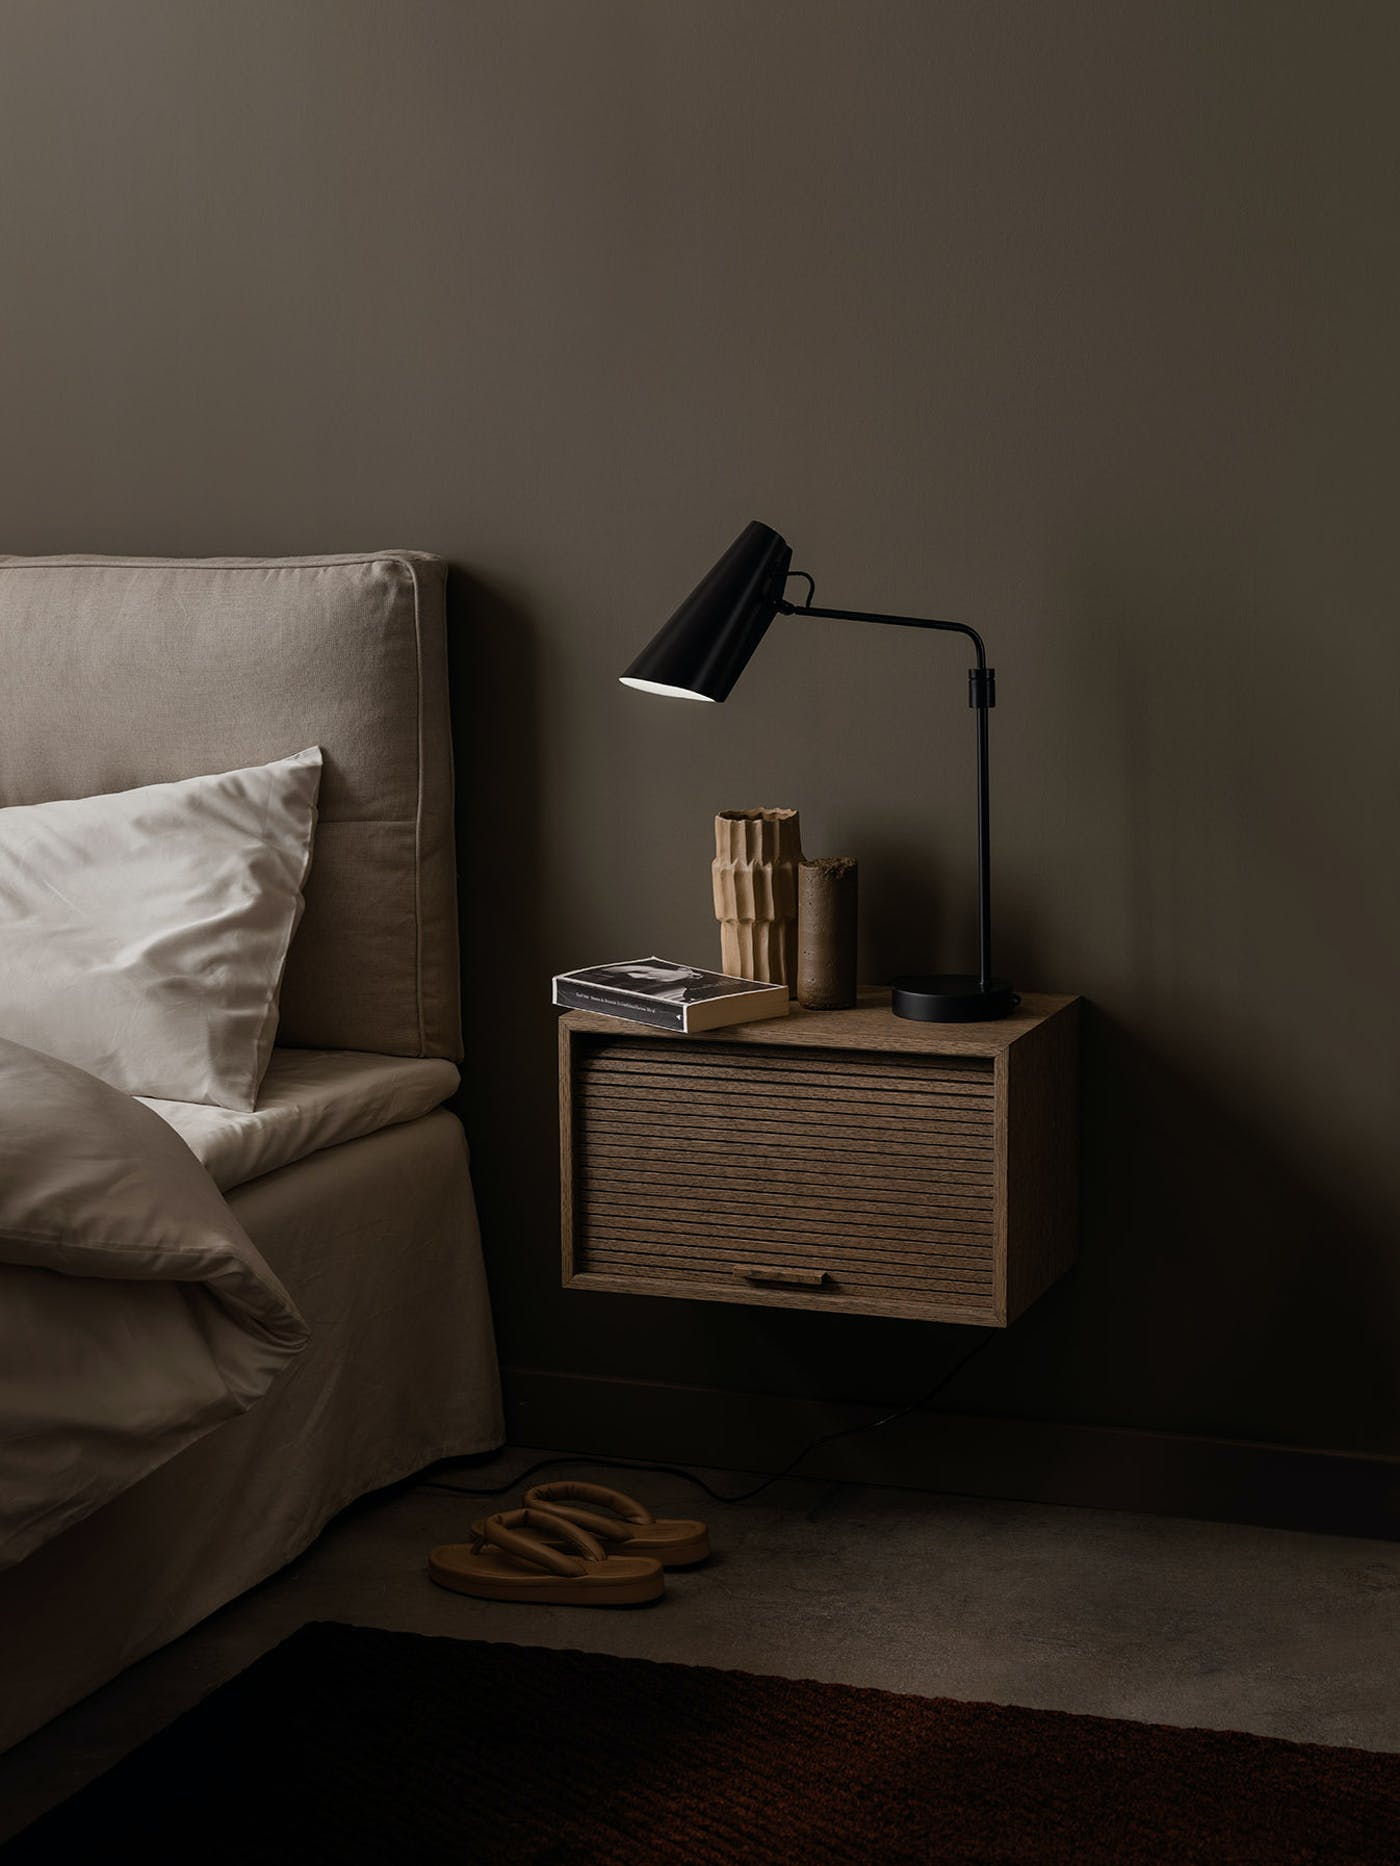 Birdy table lamp swing bedside Hifive Northern Photo Einar Aslaksen Low res